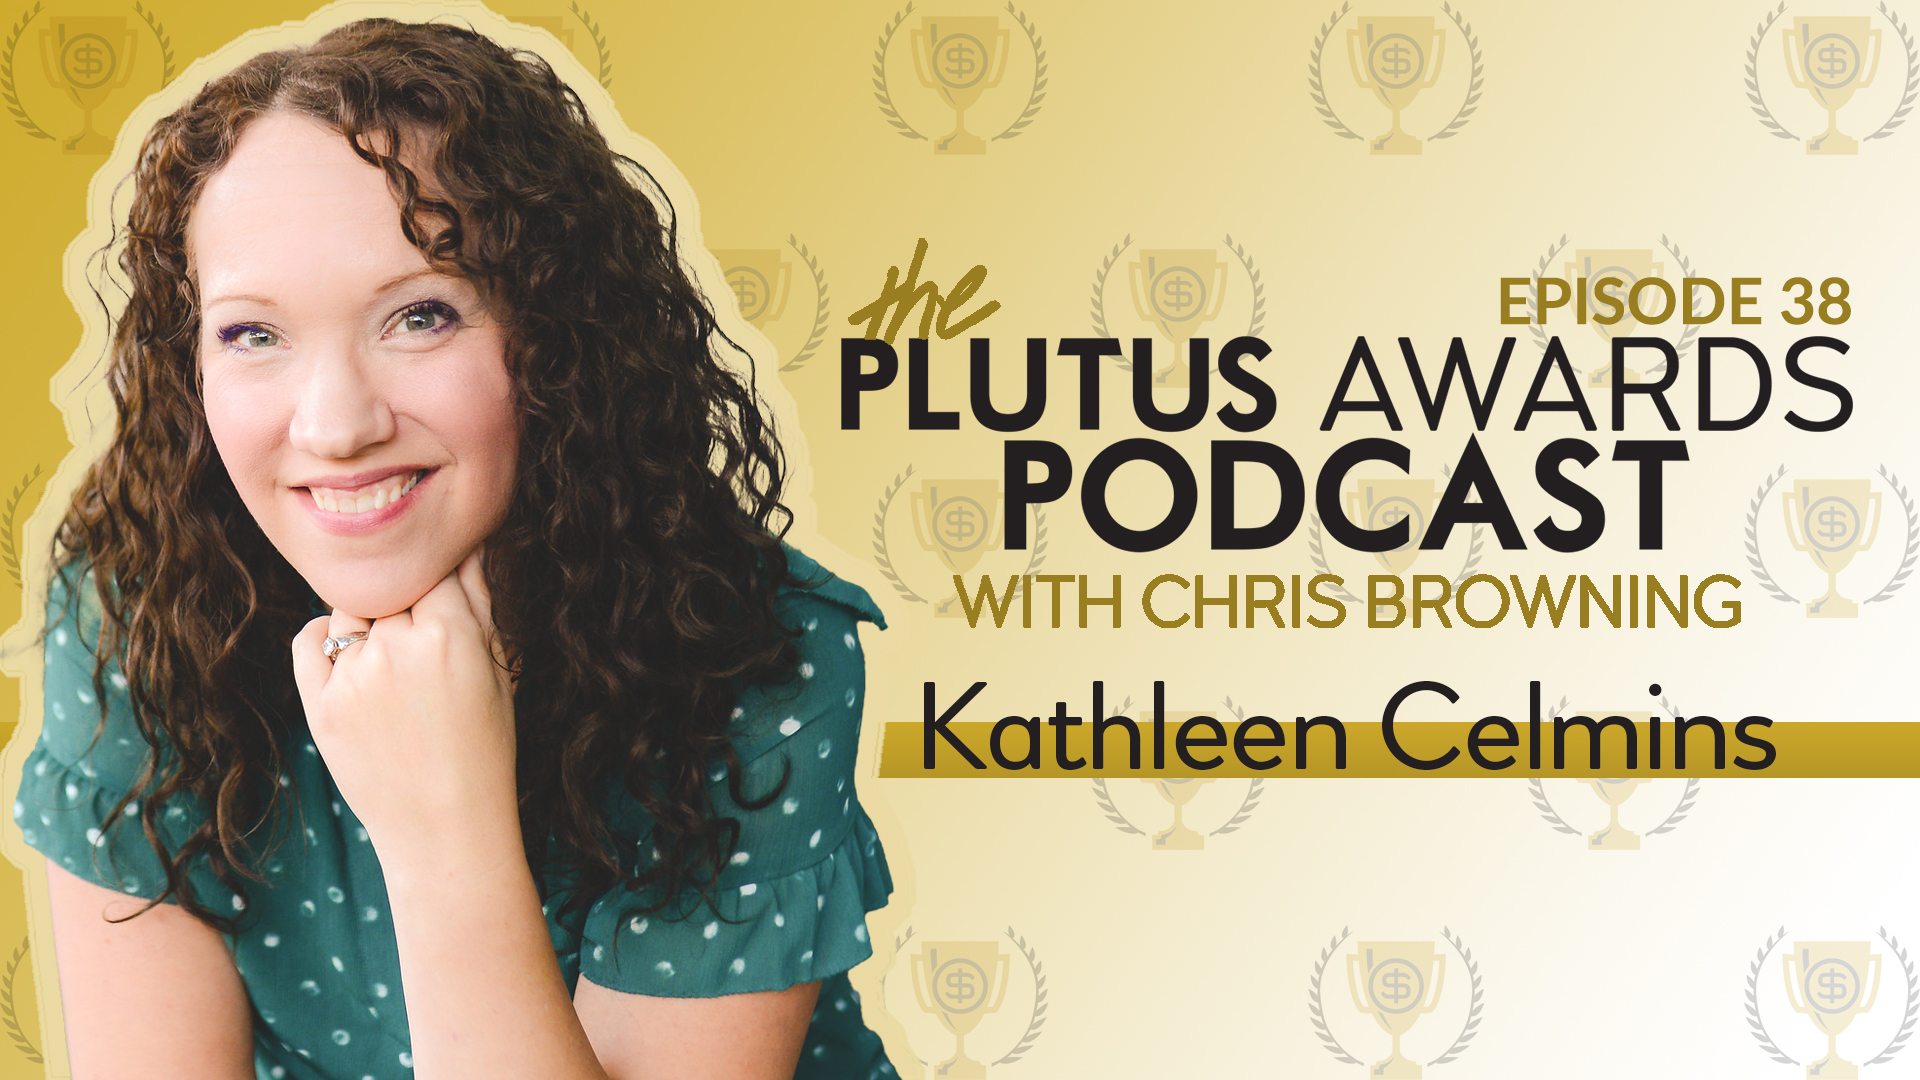 Kathleen Celmins Plutus Awards Podcast Featured Image